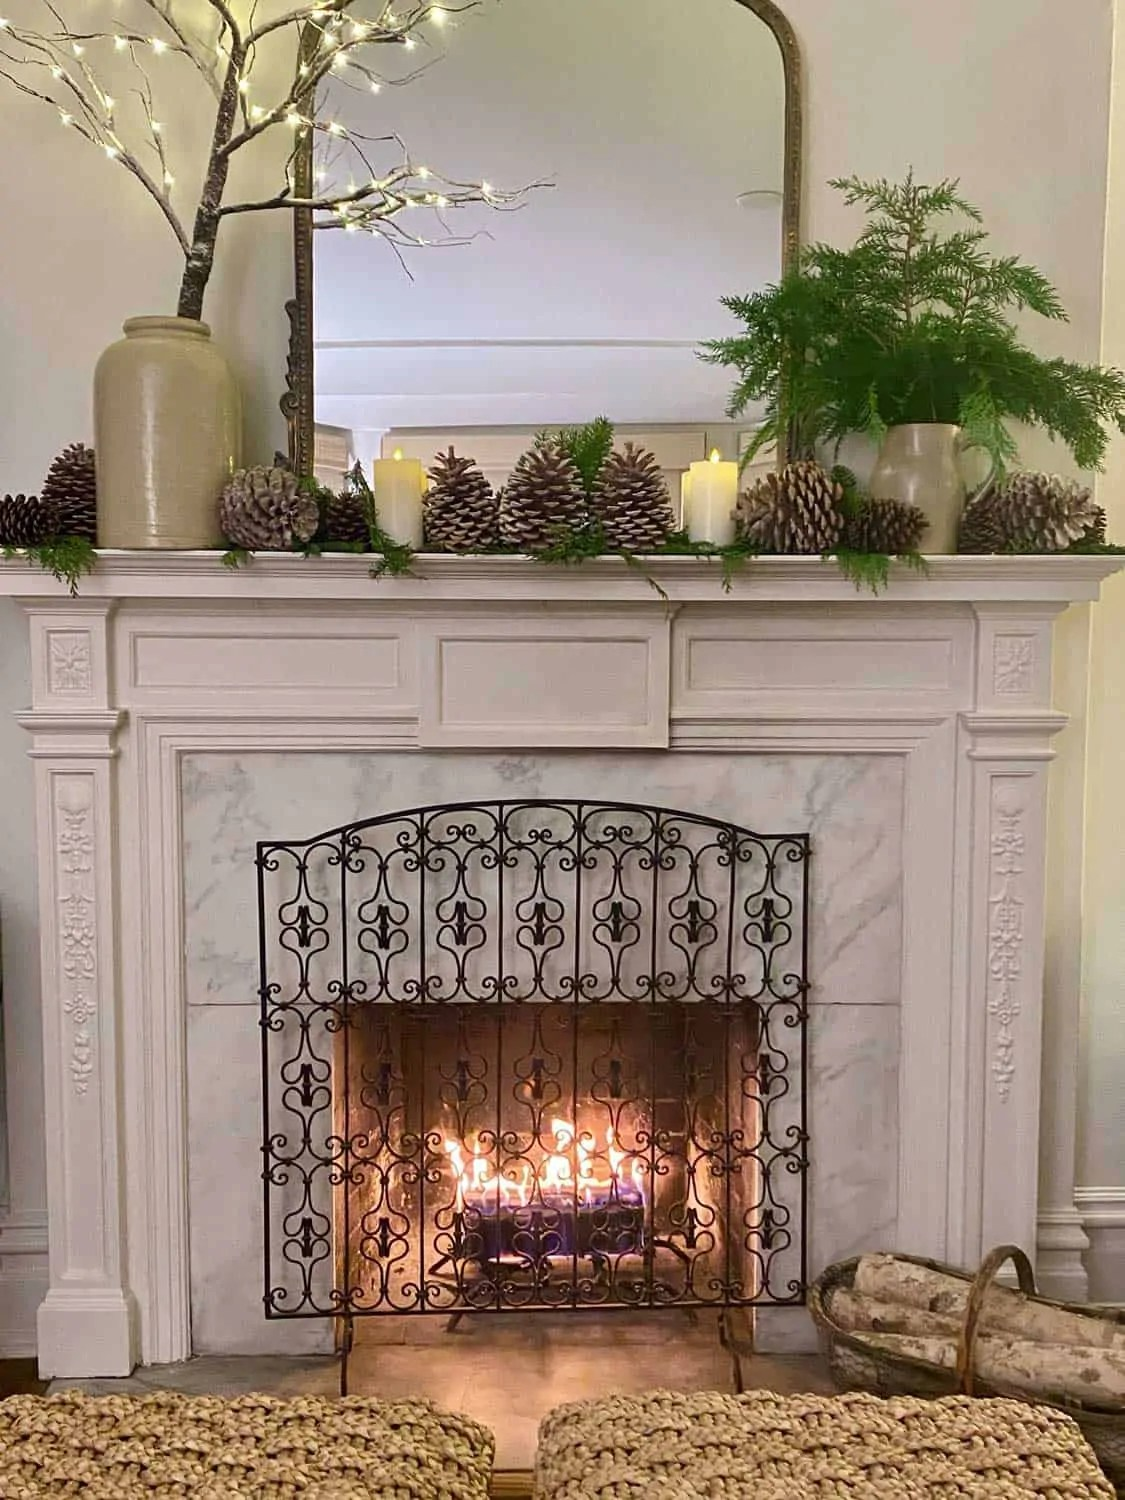 Christmas White fireplace in the evening with candles and a fire in the fireplace